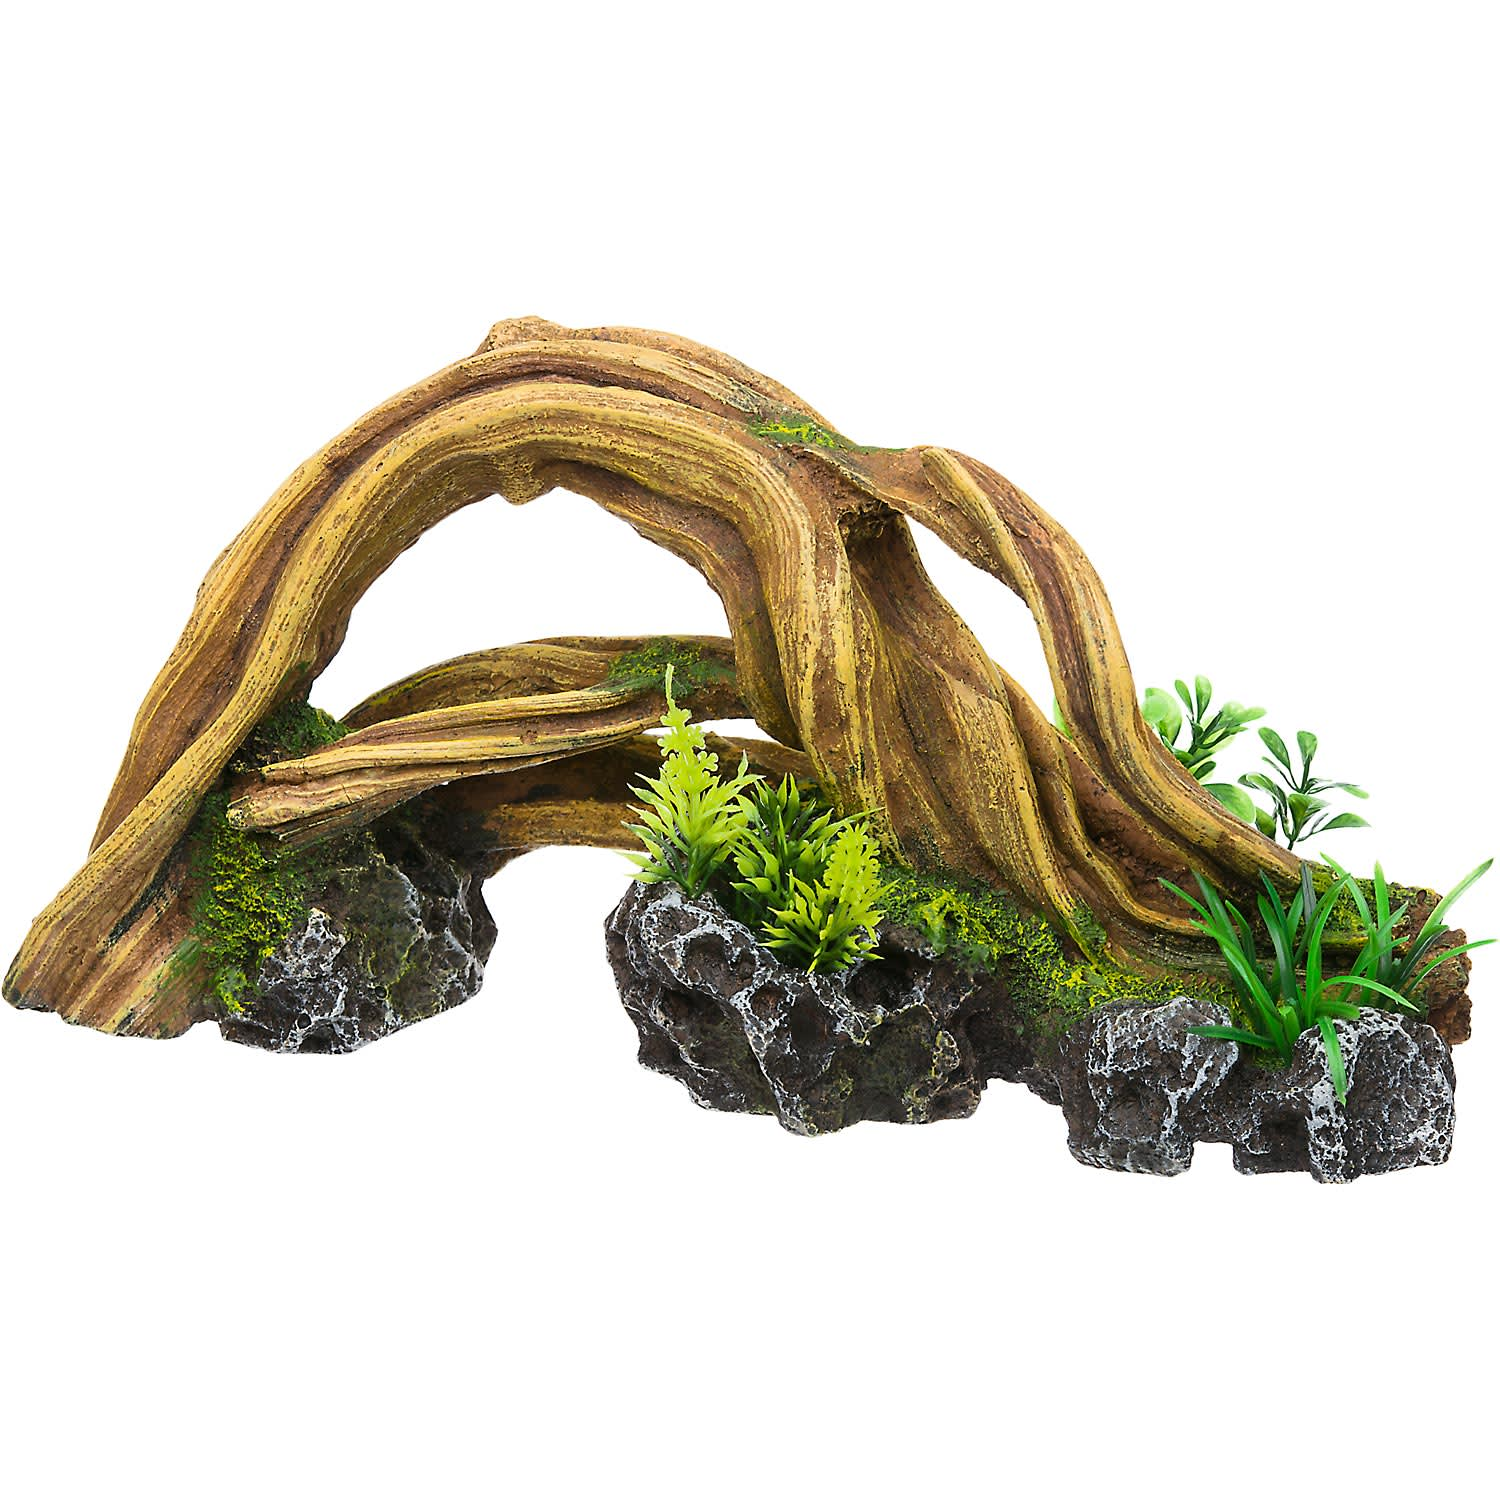 RockGarden Resin Wood Arch with Plants, 1.8 LBS, Brown / Green